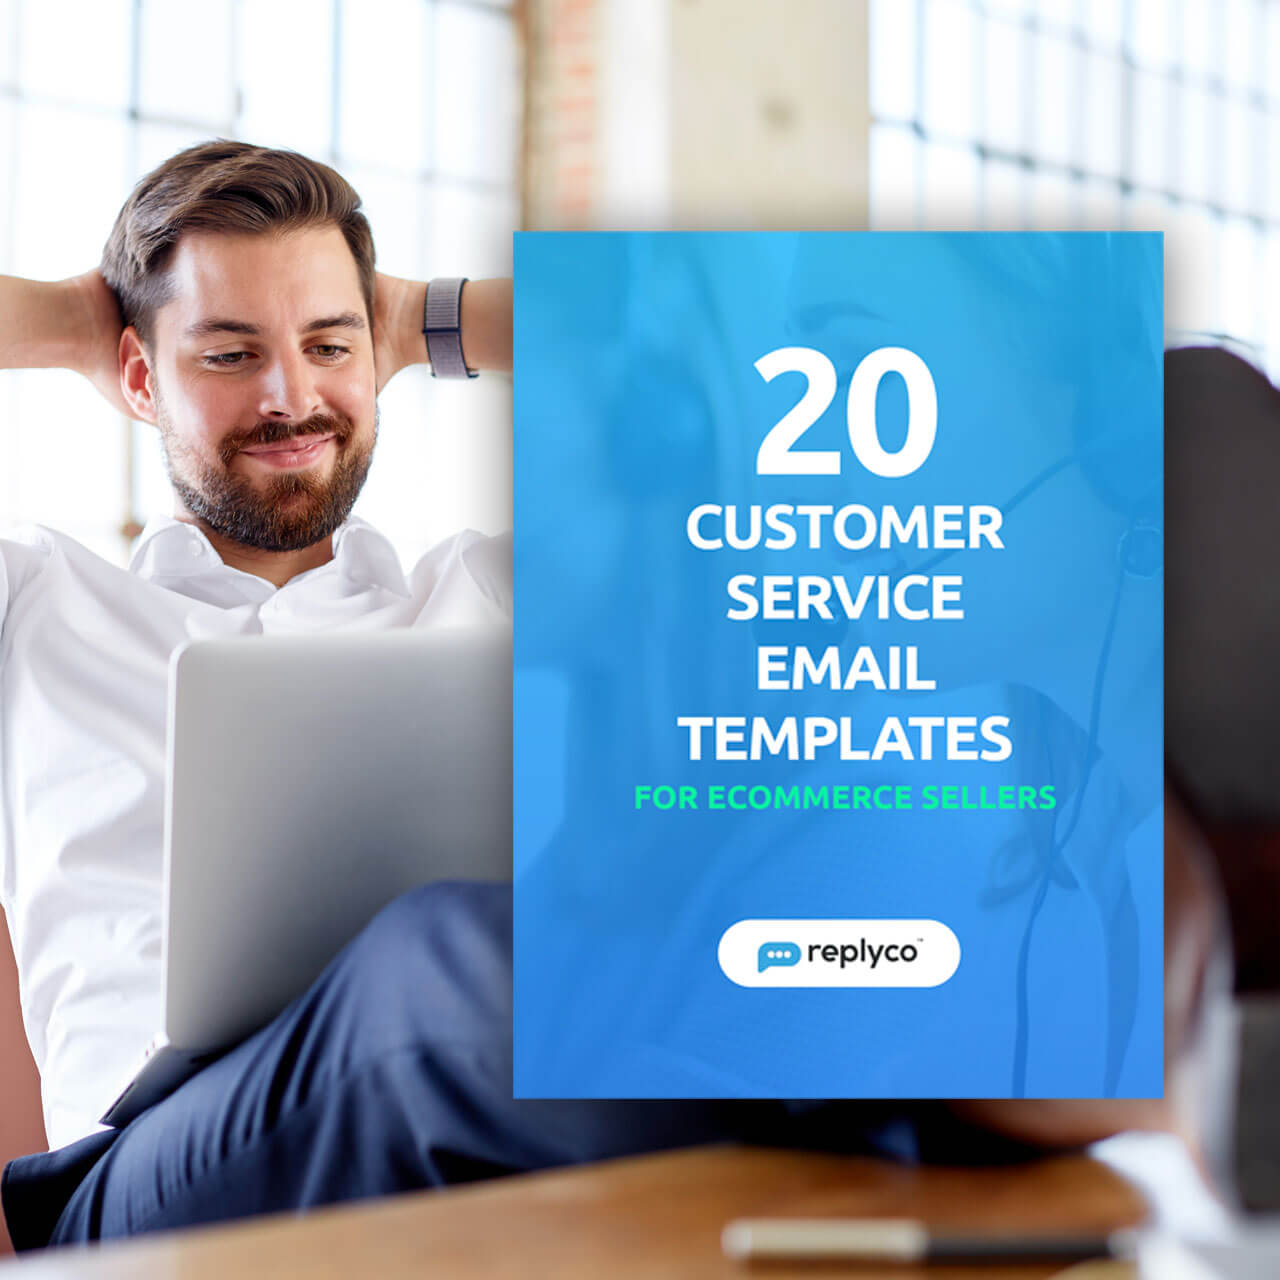 20 Customer Service Email Templates for eCommerce - Replyco Helpdesk